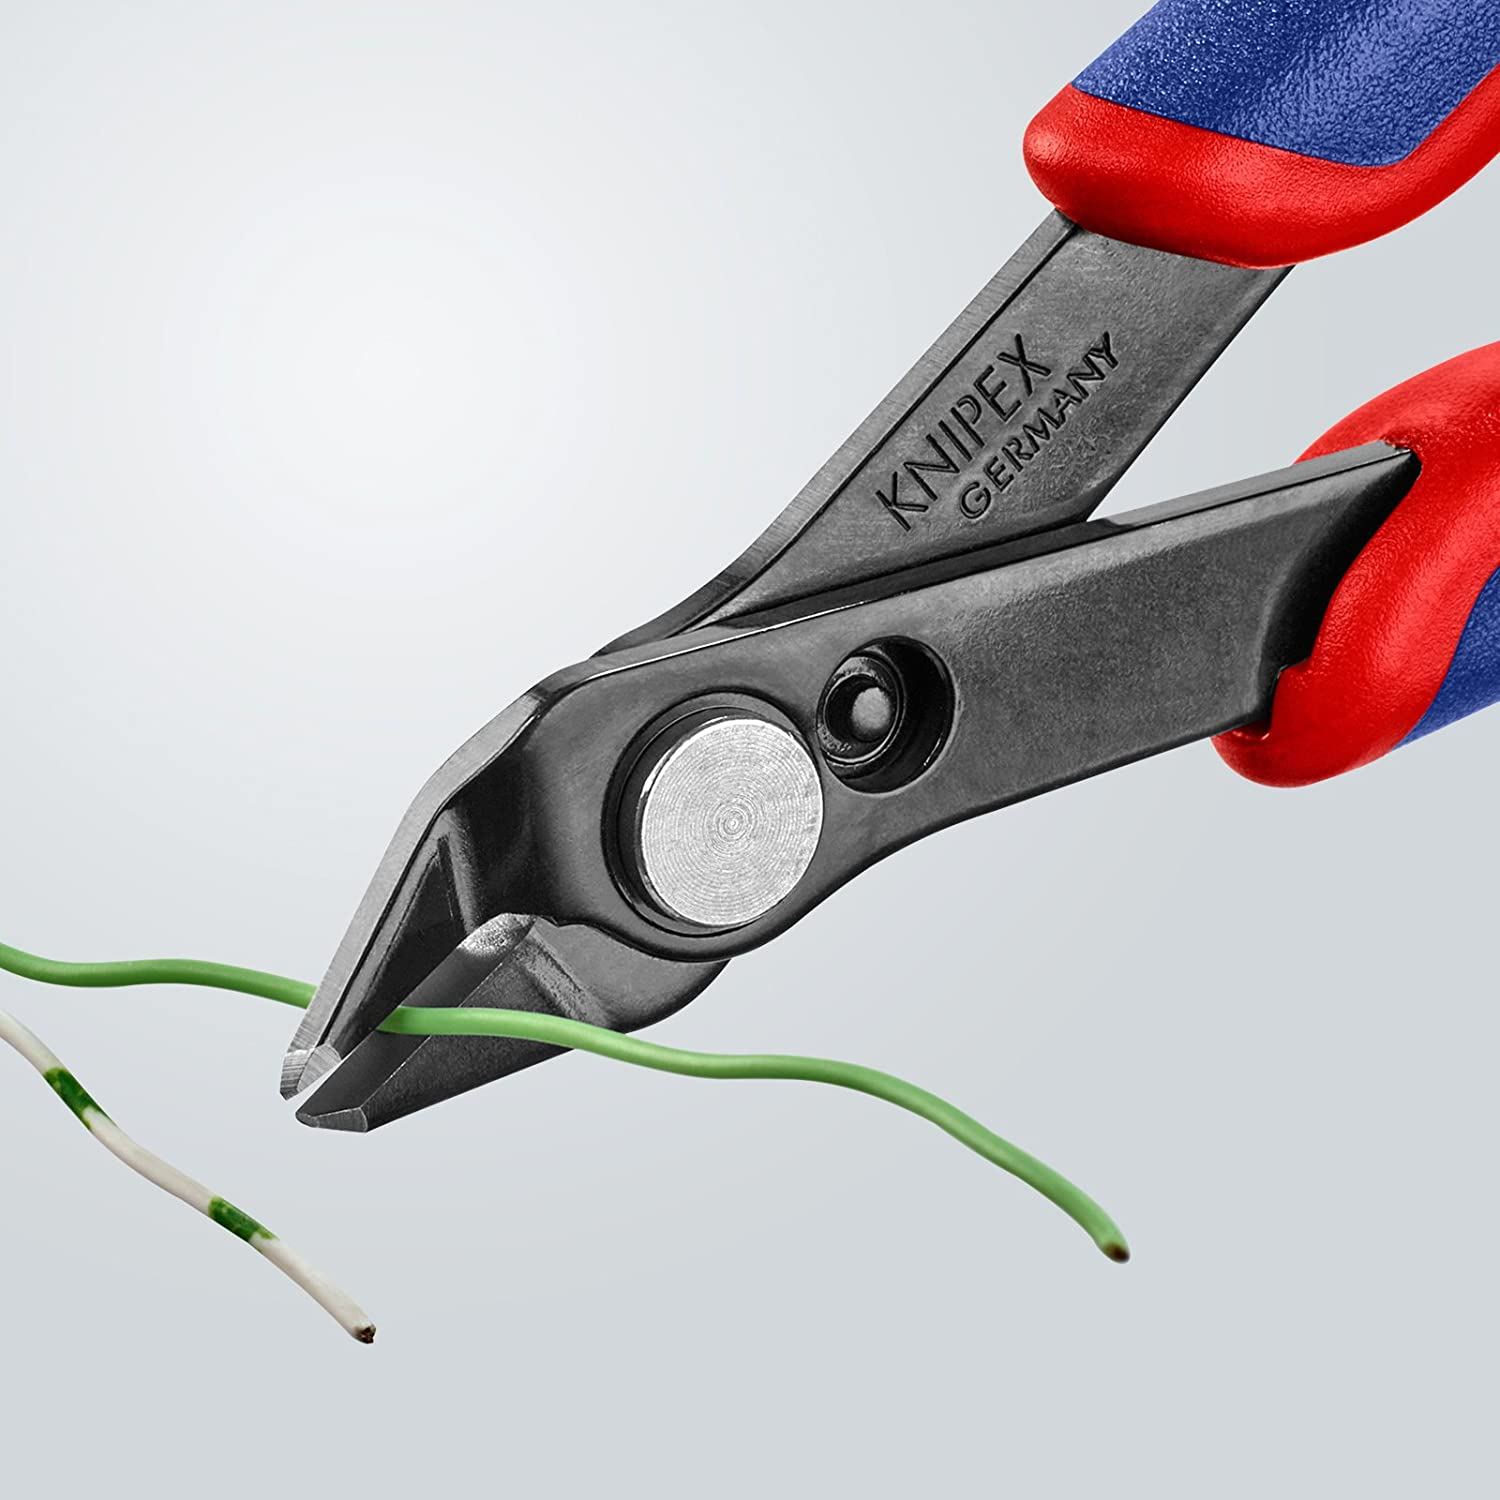 Knipex 78 81 125 - Electronic Super Knips, precision pliers ...